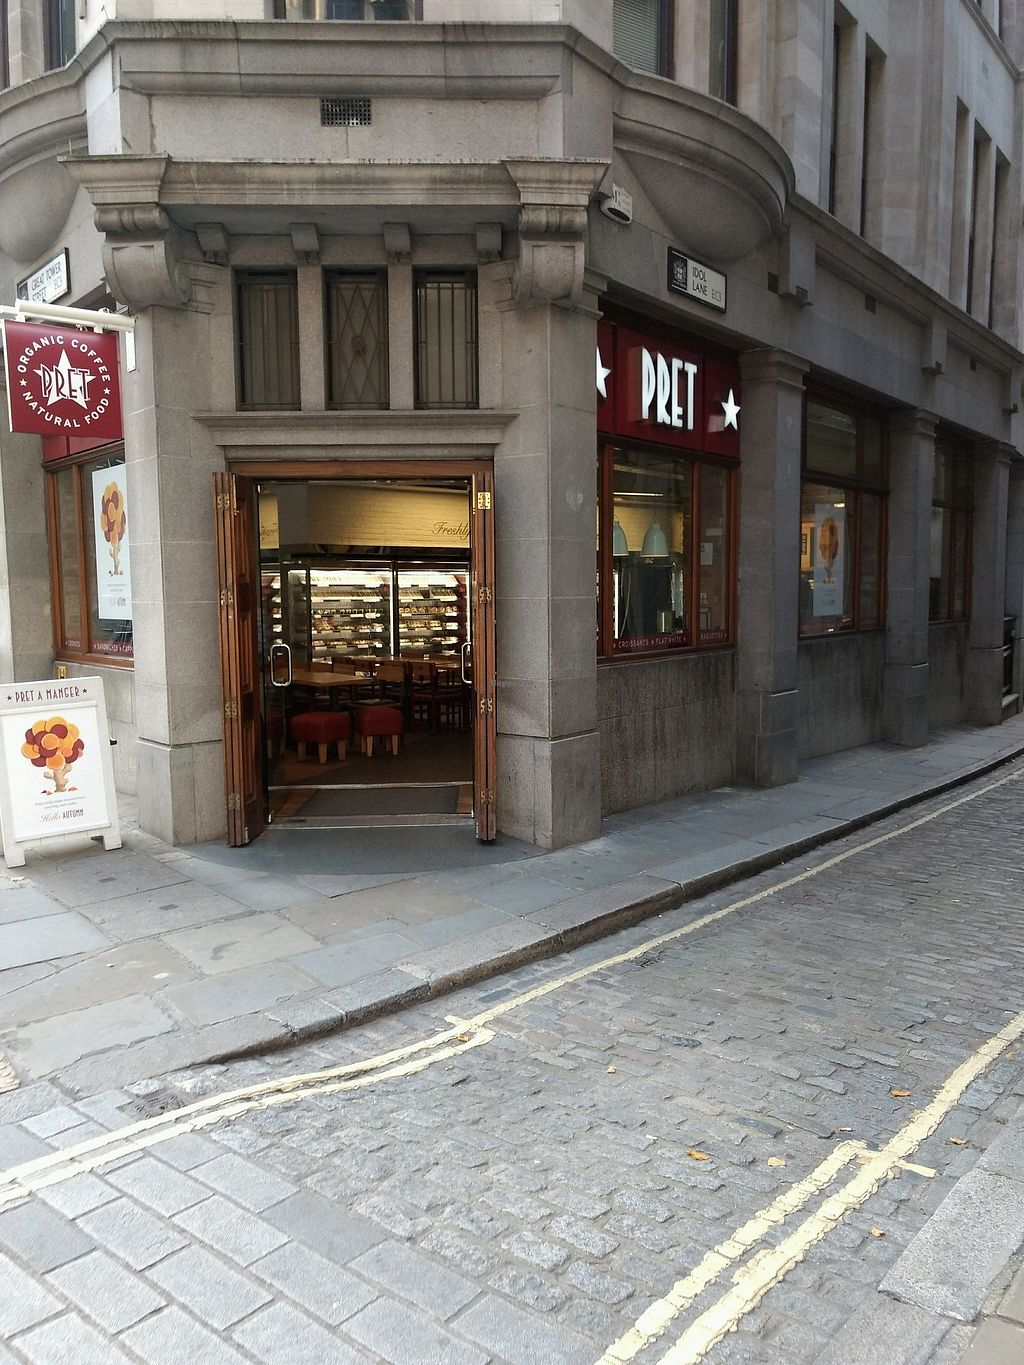 """Photo of Pret A Manger - Great Tower St  by <a href=""""/members/profile/craigmc"""">craigmc</a> <br/>pret <br/> October 17, 2017  - <a href='/contact/abuse/image/74560/316028'>Report</a>"""